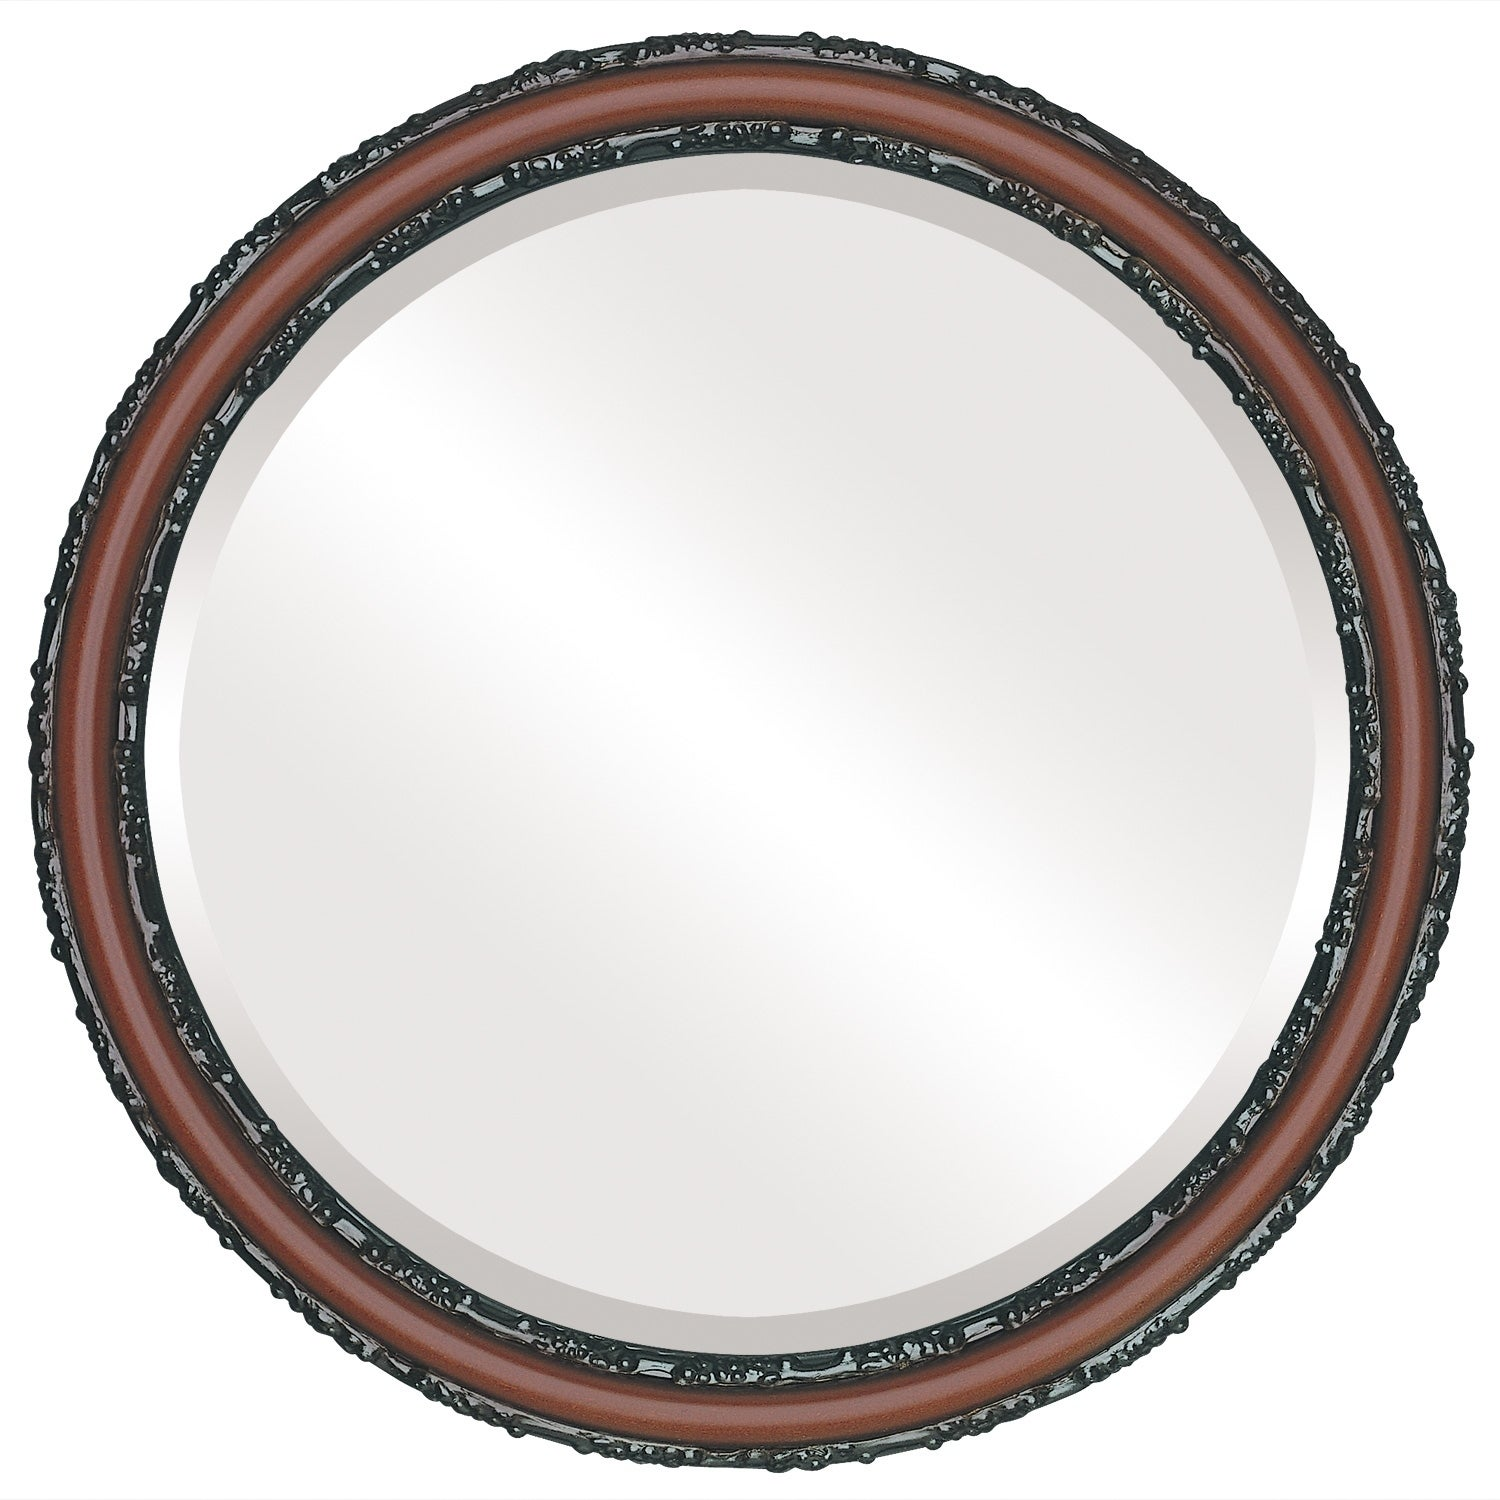 Virginia Framed Round Mirror in Rosewood - Red (15x15)